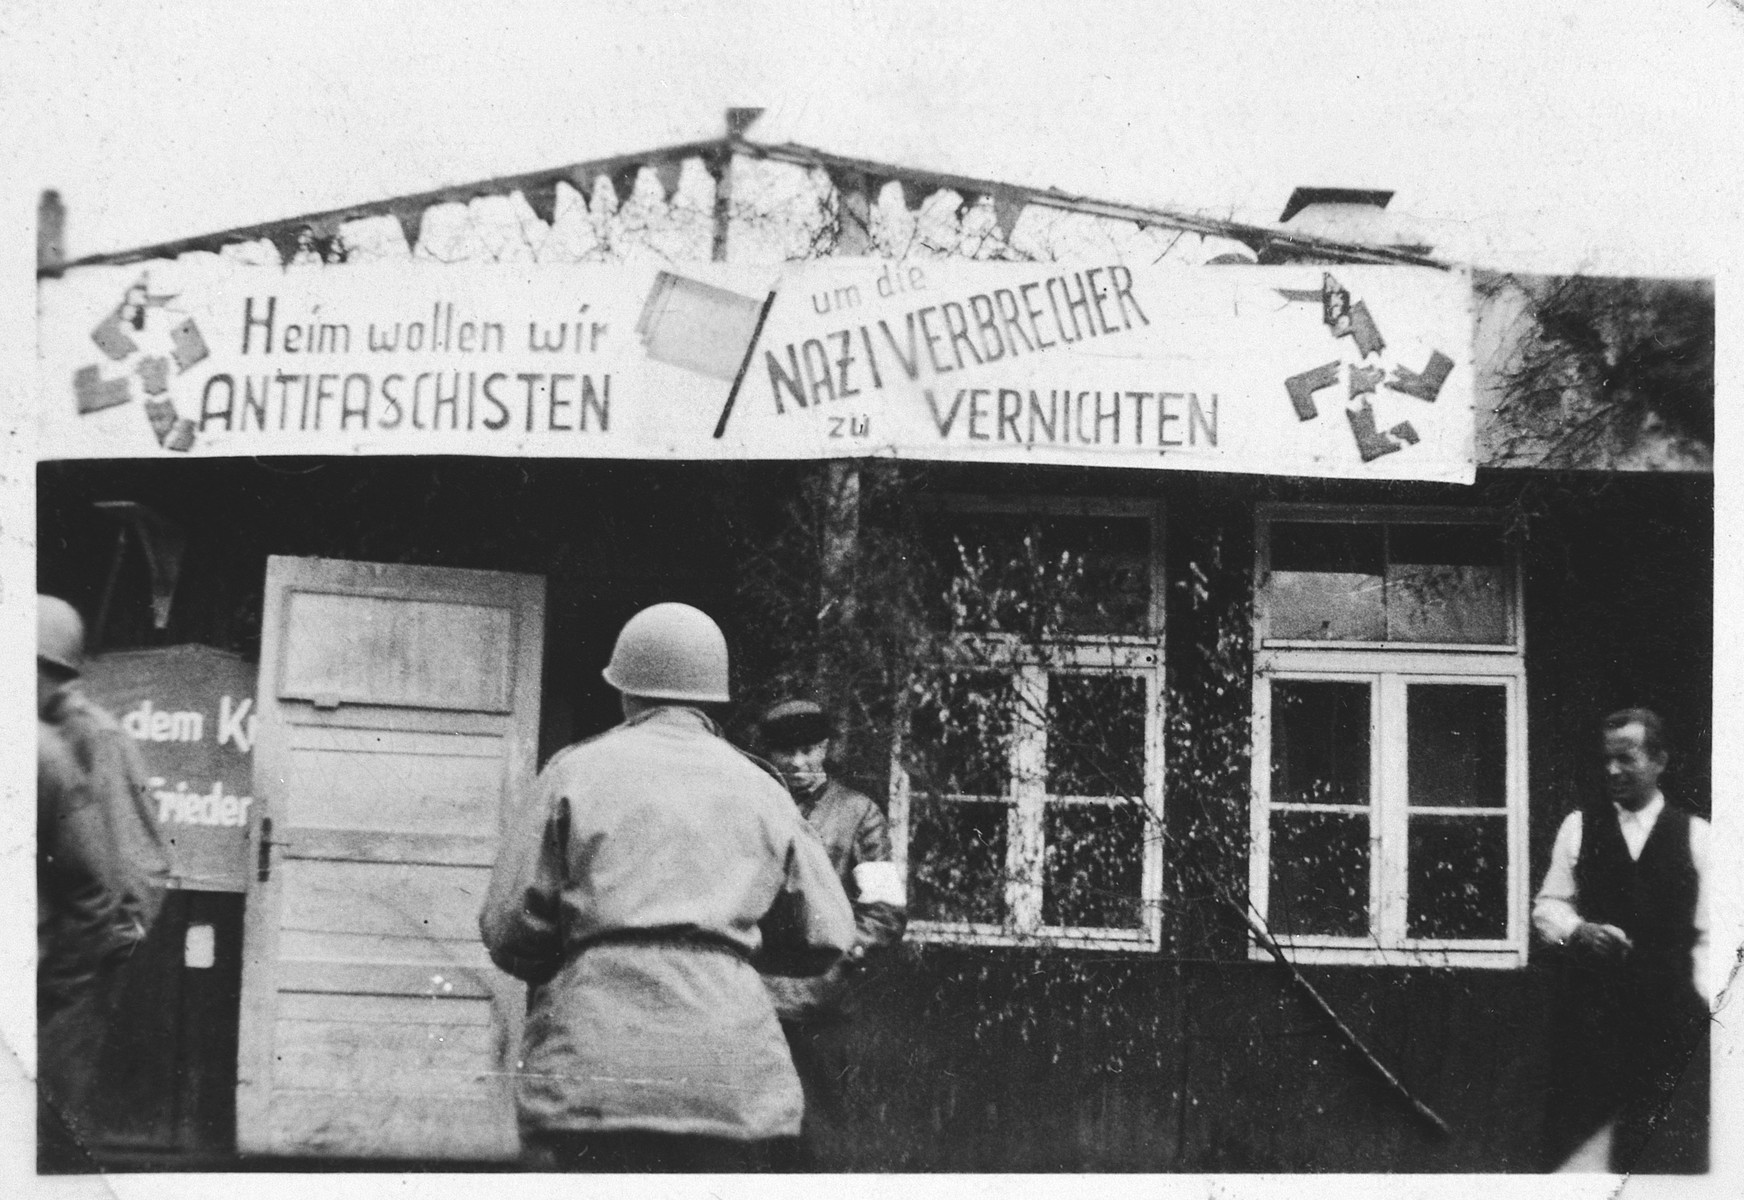 An American serviceman looks at an anti-Nazi banner hanging outside a barrack in the Buchenwald concentration camp.